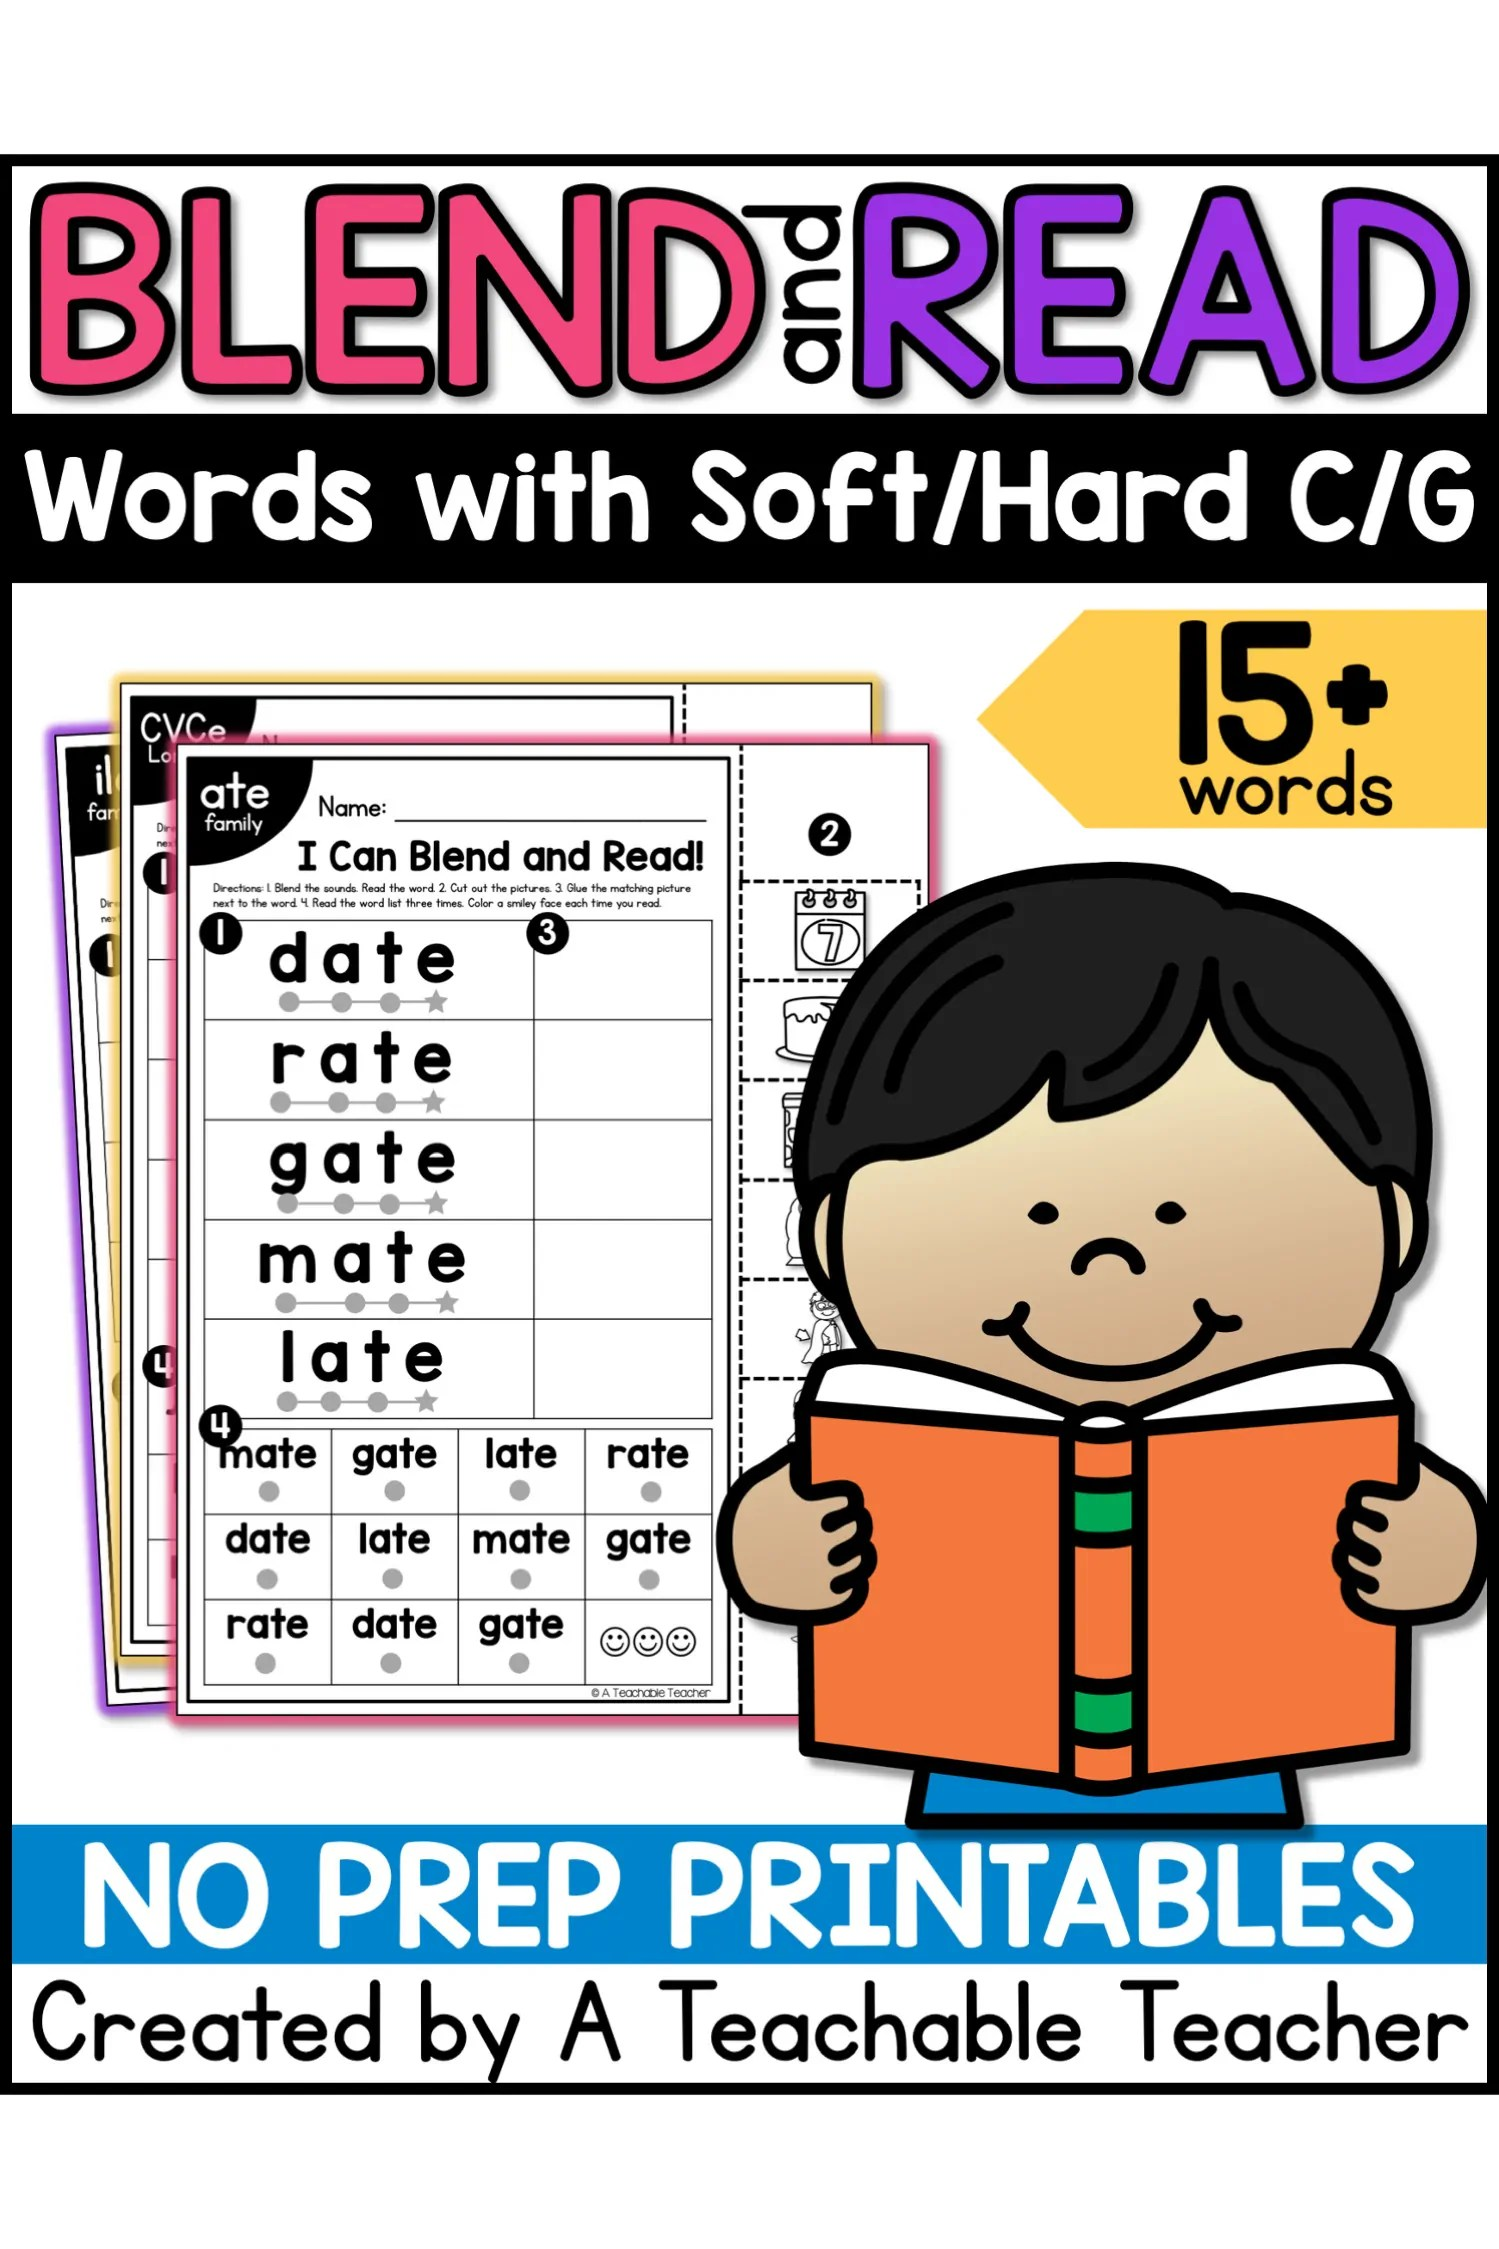 hight resolution of Blend and Read - Words with Soft/Hard C/G - A Teachable Teacher